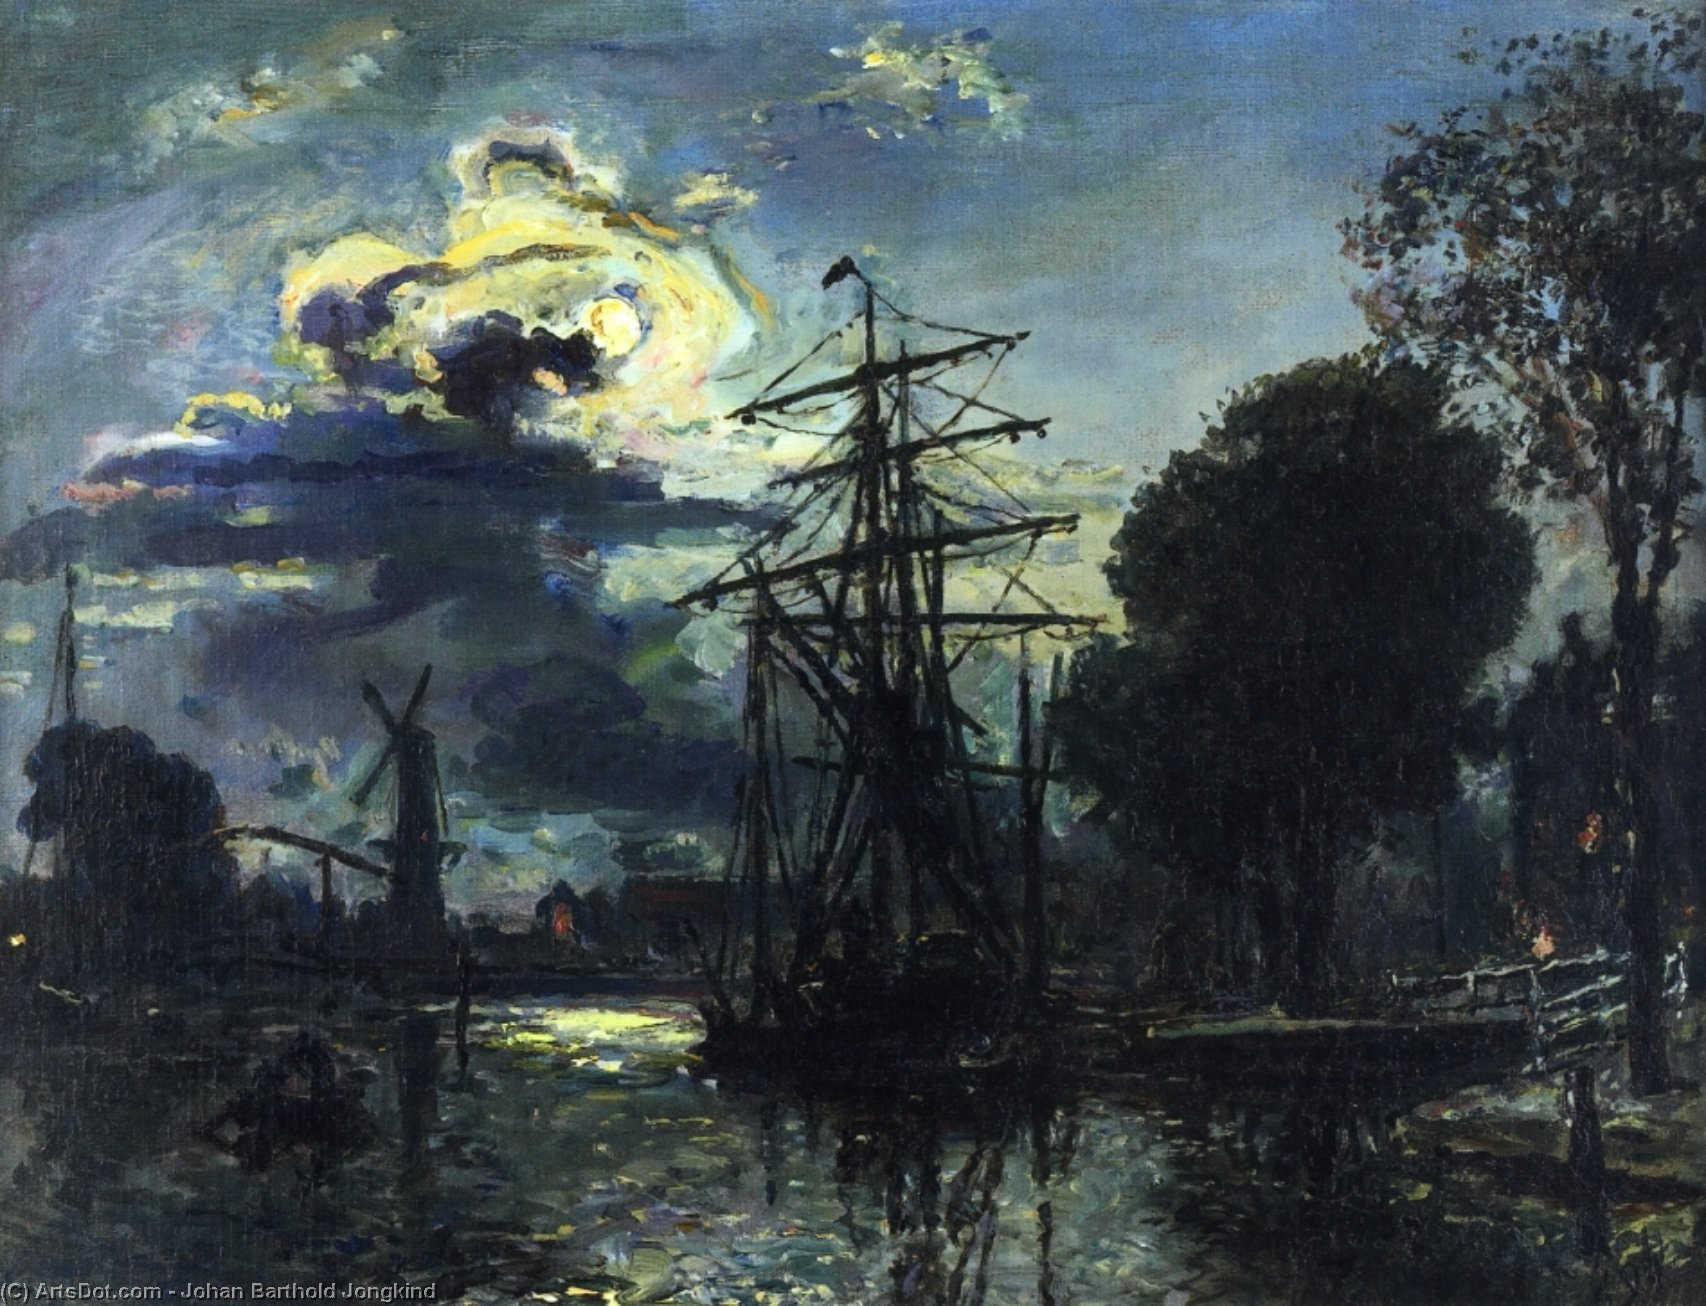 Canal in the Moonlight, Oil On Canvas by Johan Barthold Jongkind (1819-1891, Netherlands)